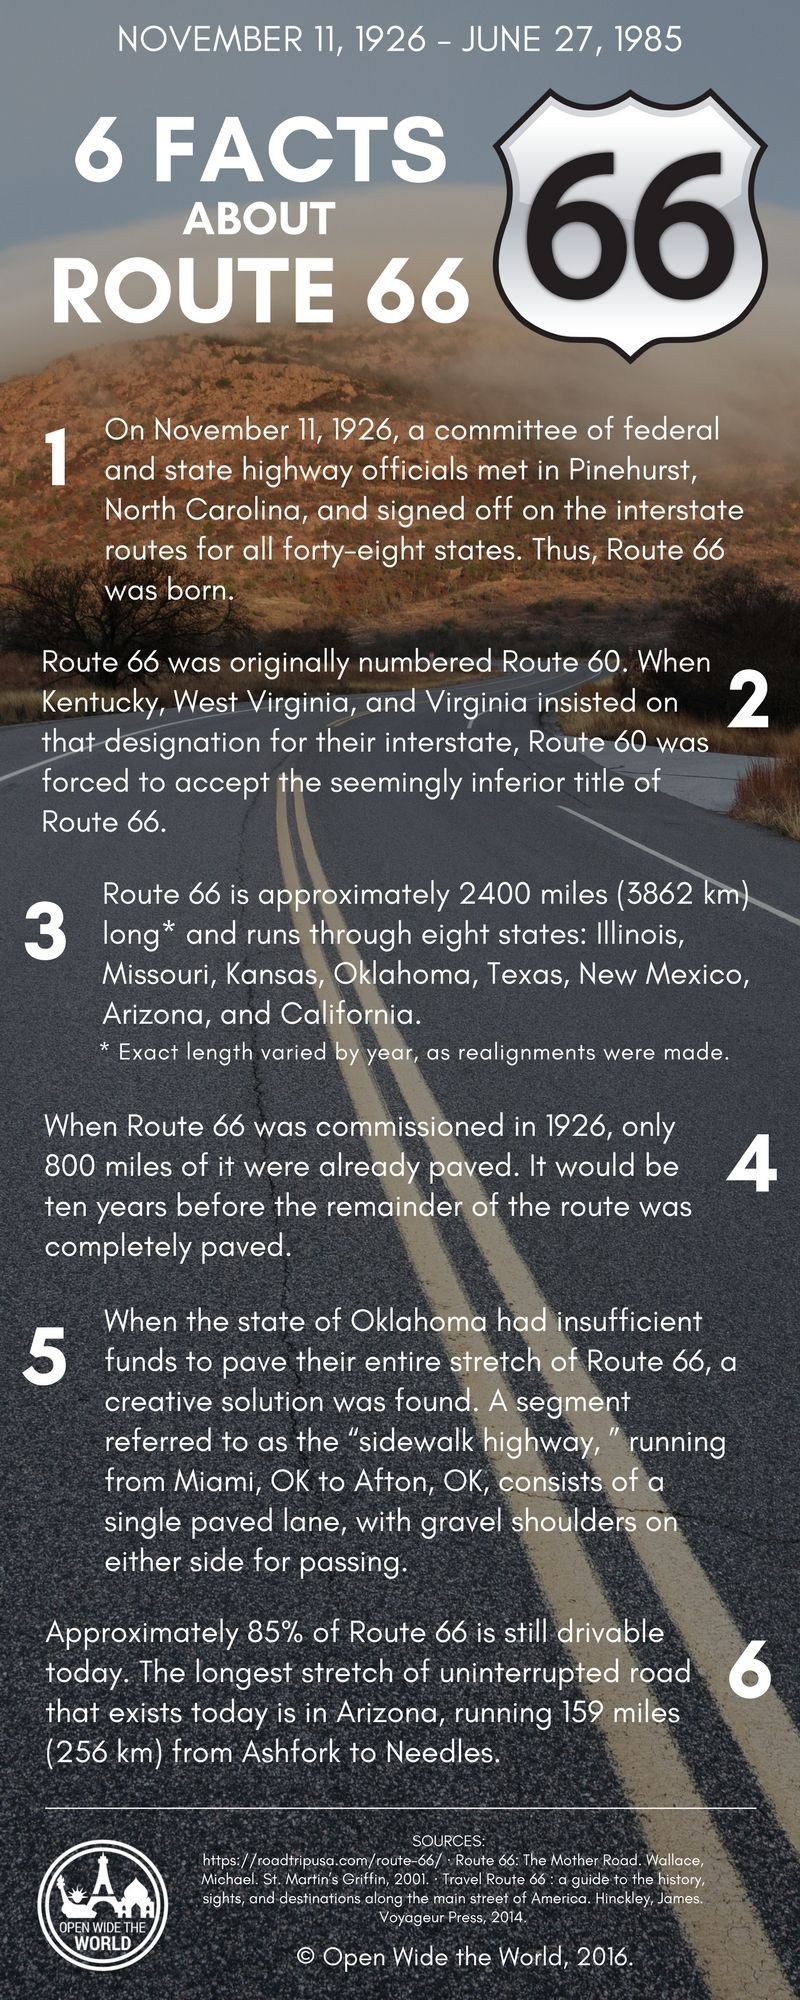 route-66-trivia-from-open-wide-the-world.jpg